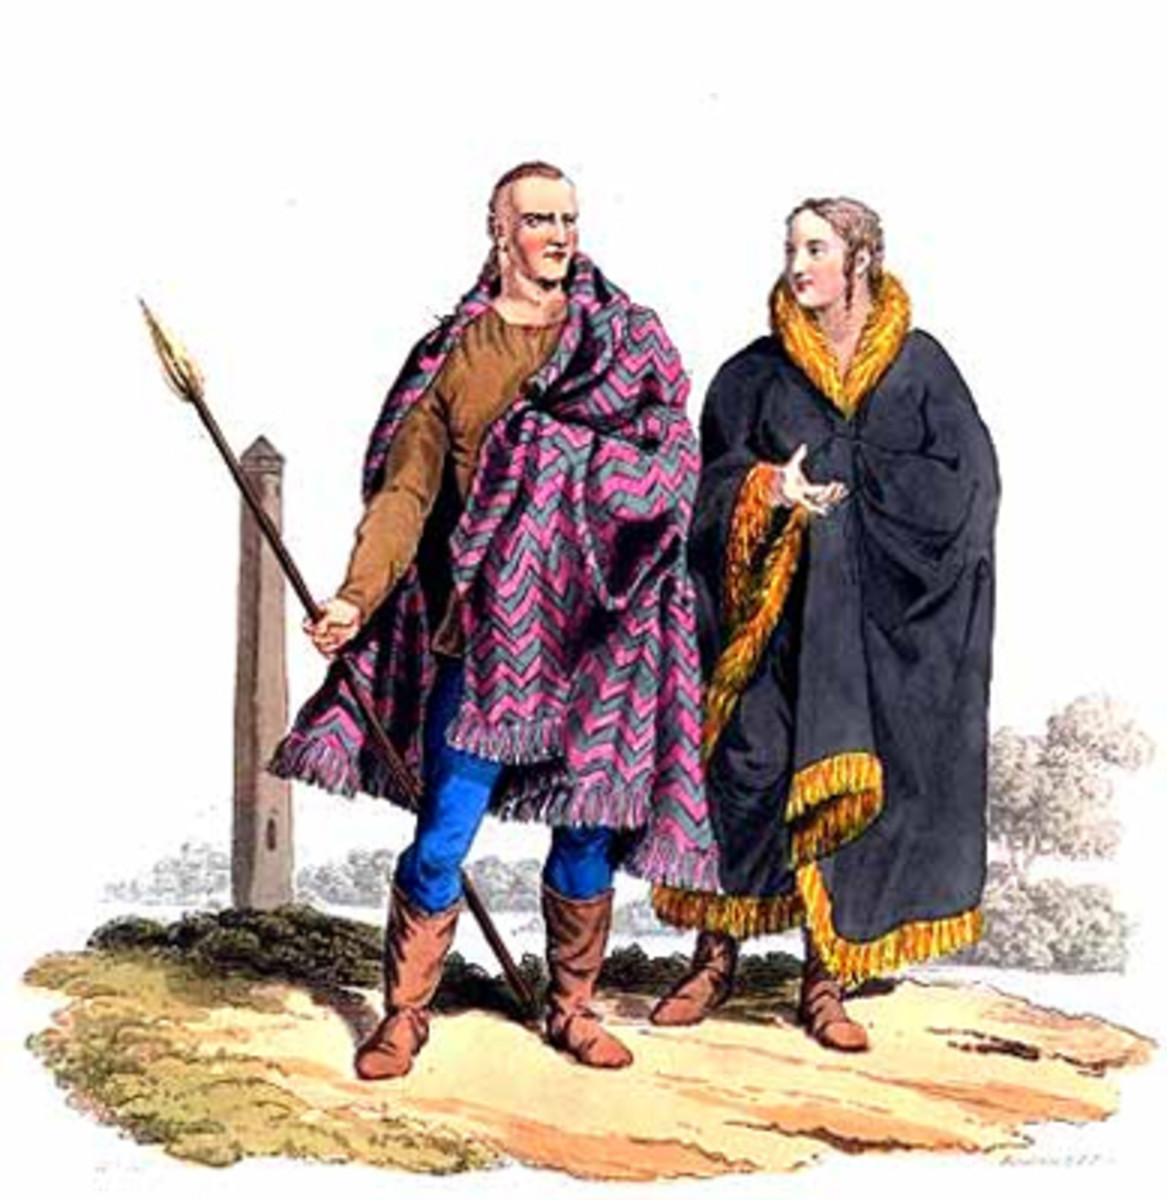 Aryans were tall, fair complexion, smart people who were fond of outdoor games like horse racing  and chariot racing . They lived in tribes initially when they arrived in India but after invading Dravidians, they lived in a city or urban life.